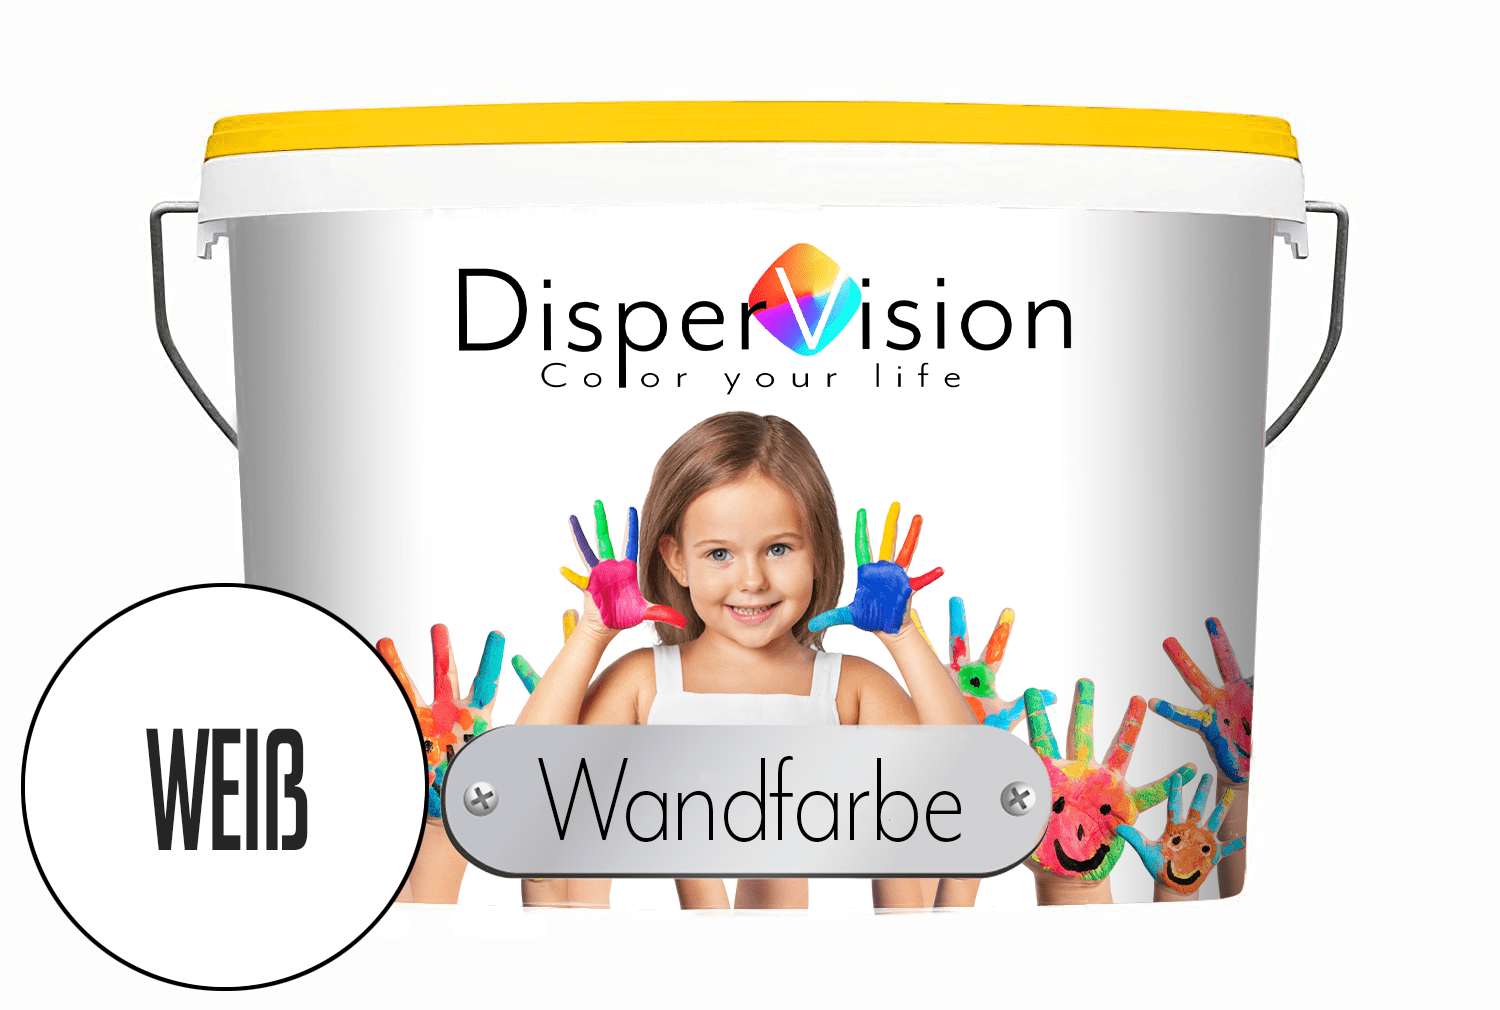 DisperVision Wandfarbe matt weiß - Dispersionsfarbe für innen - DisperVision